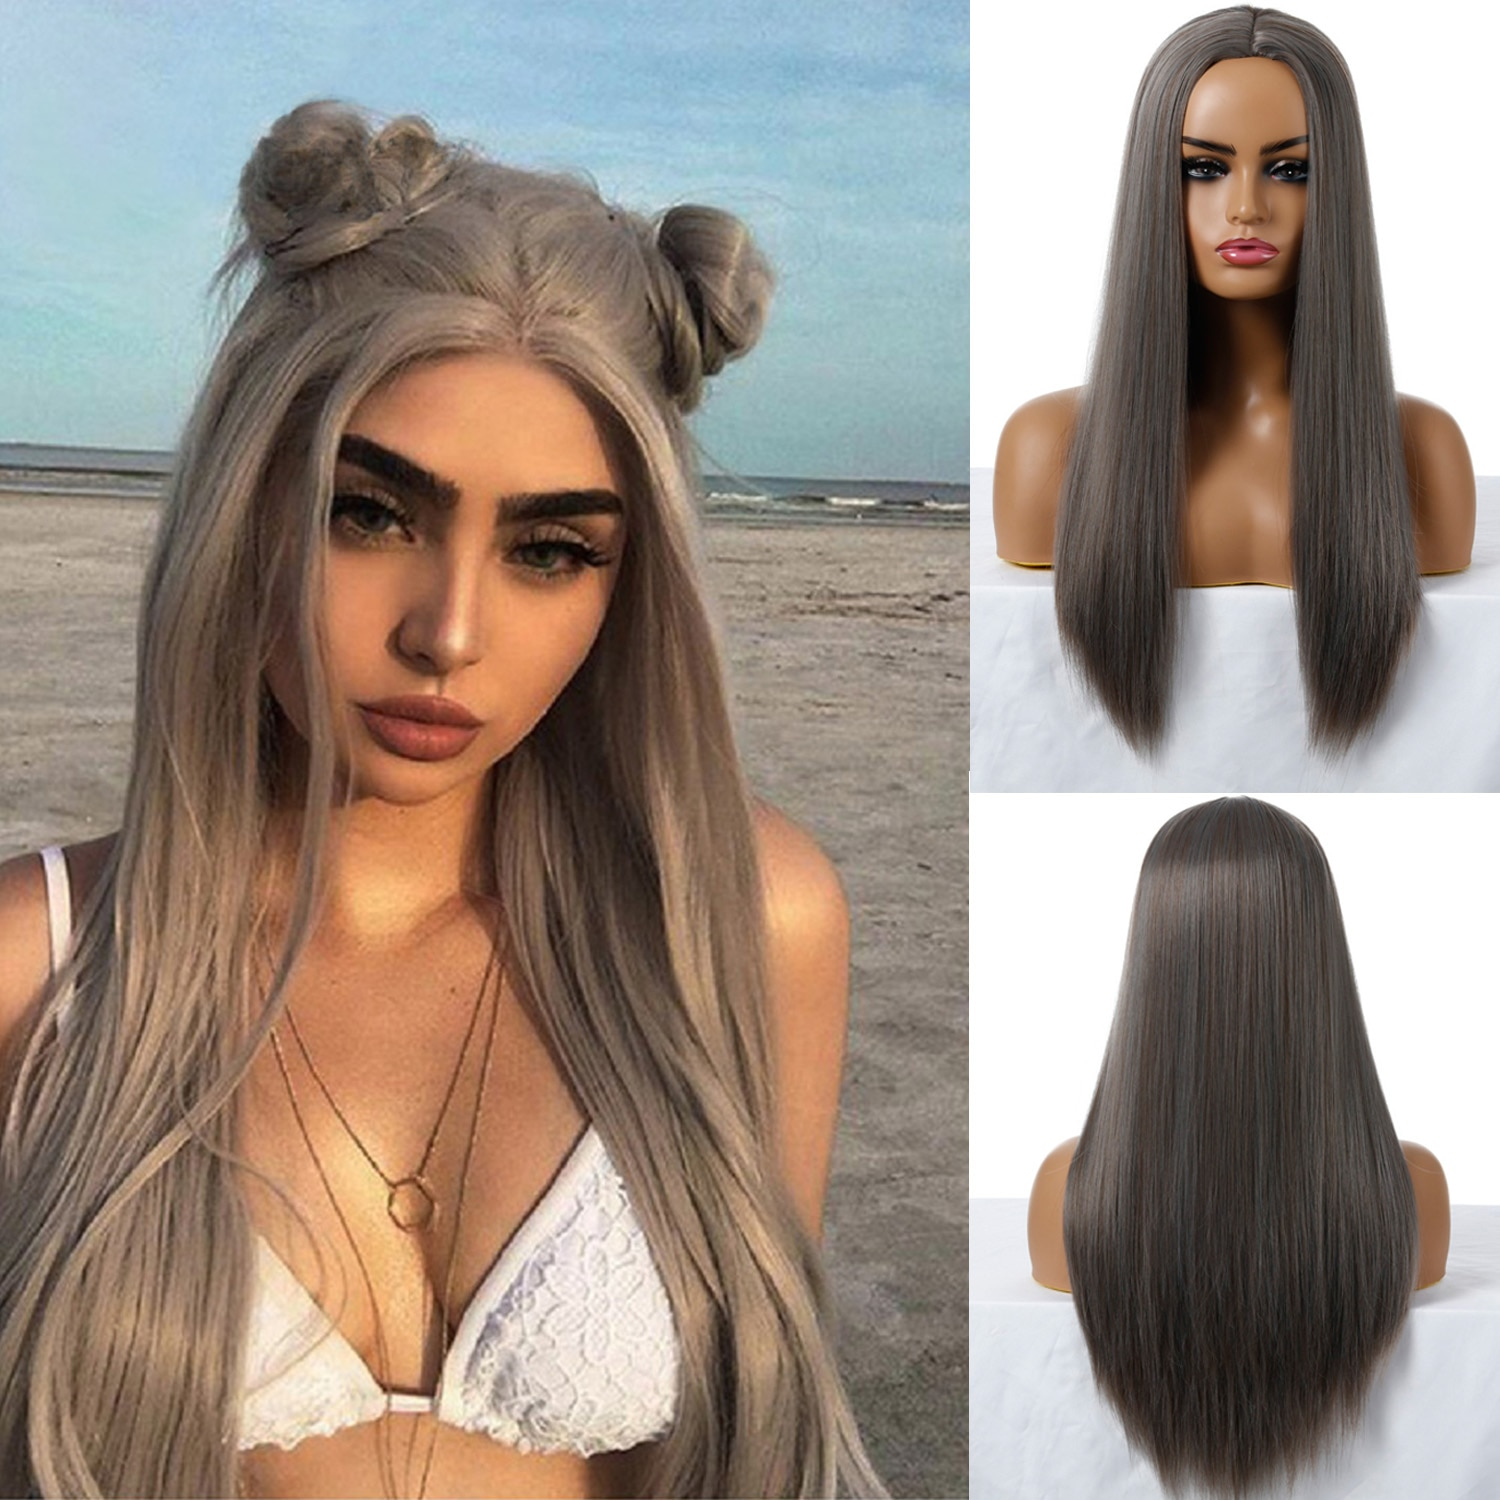 Synthetic Wigs for Women 13 Colour Long Straight Silky Wig Black Golden Natural Middle Party Daily Use Heat Resistant Fiber